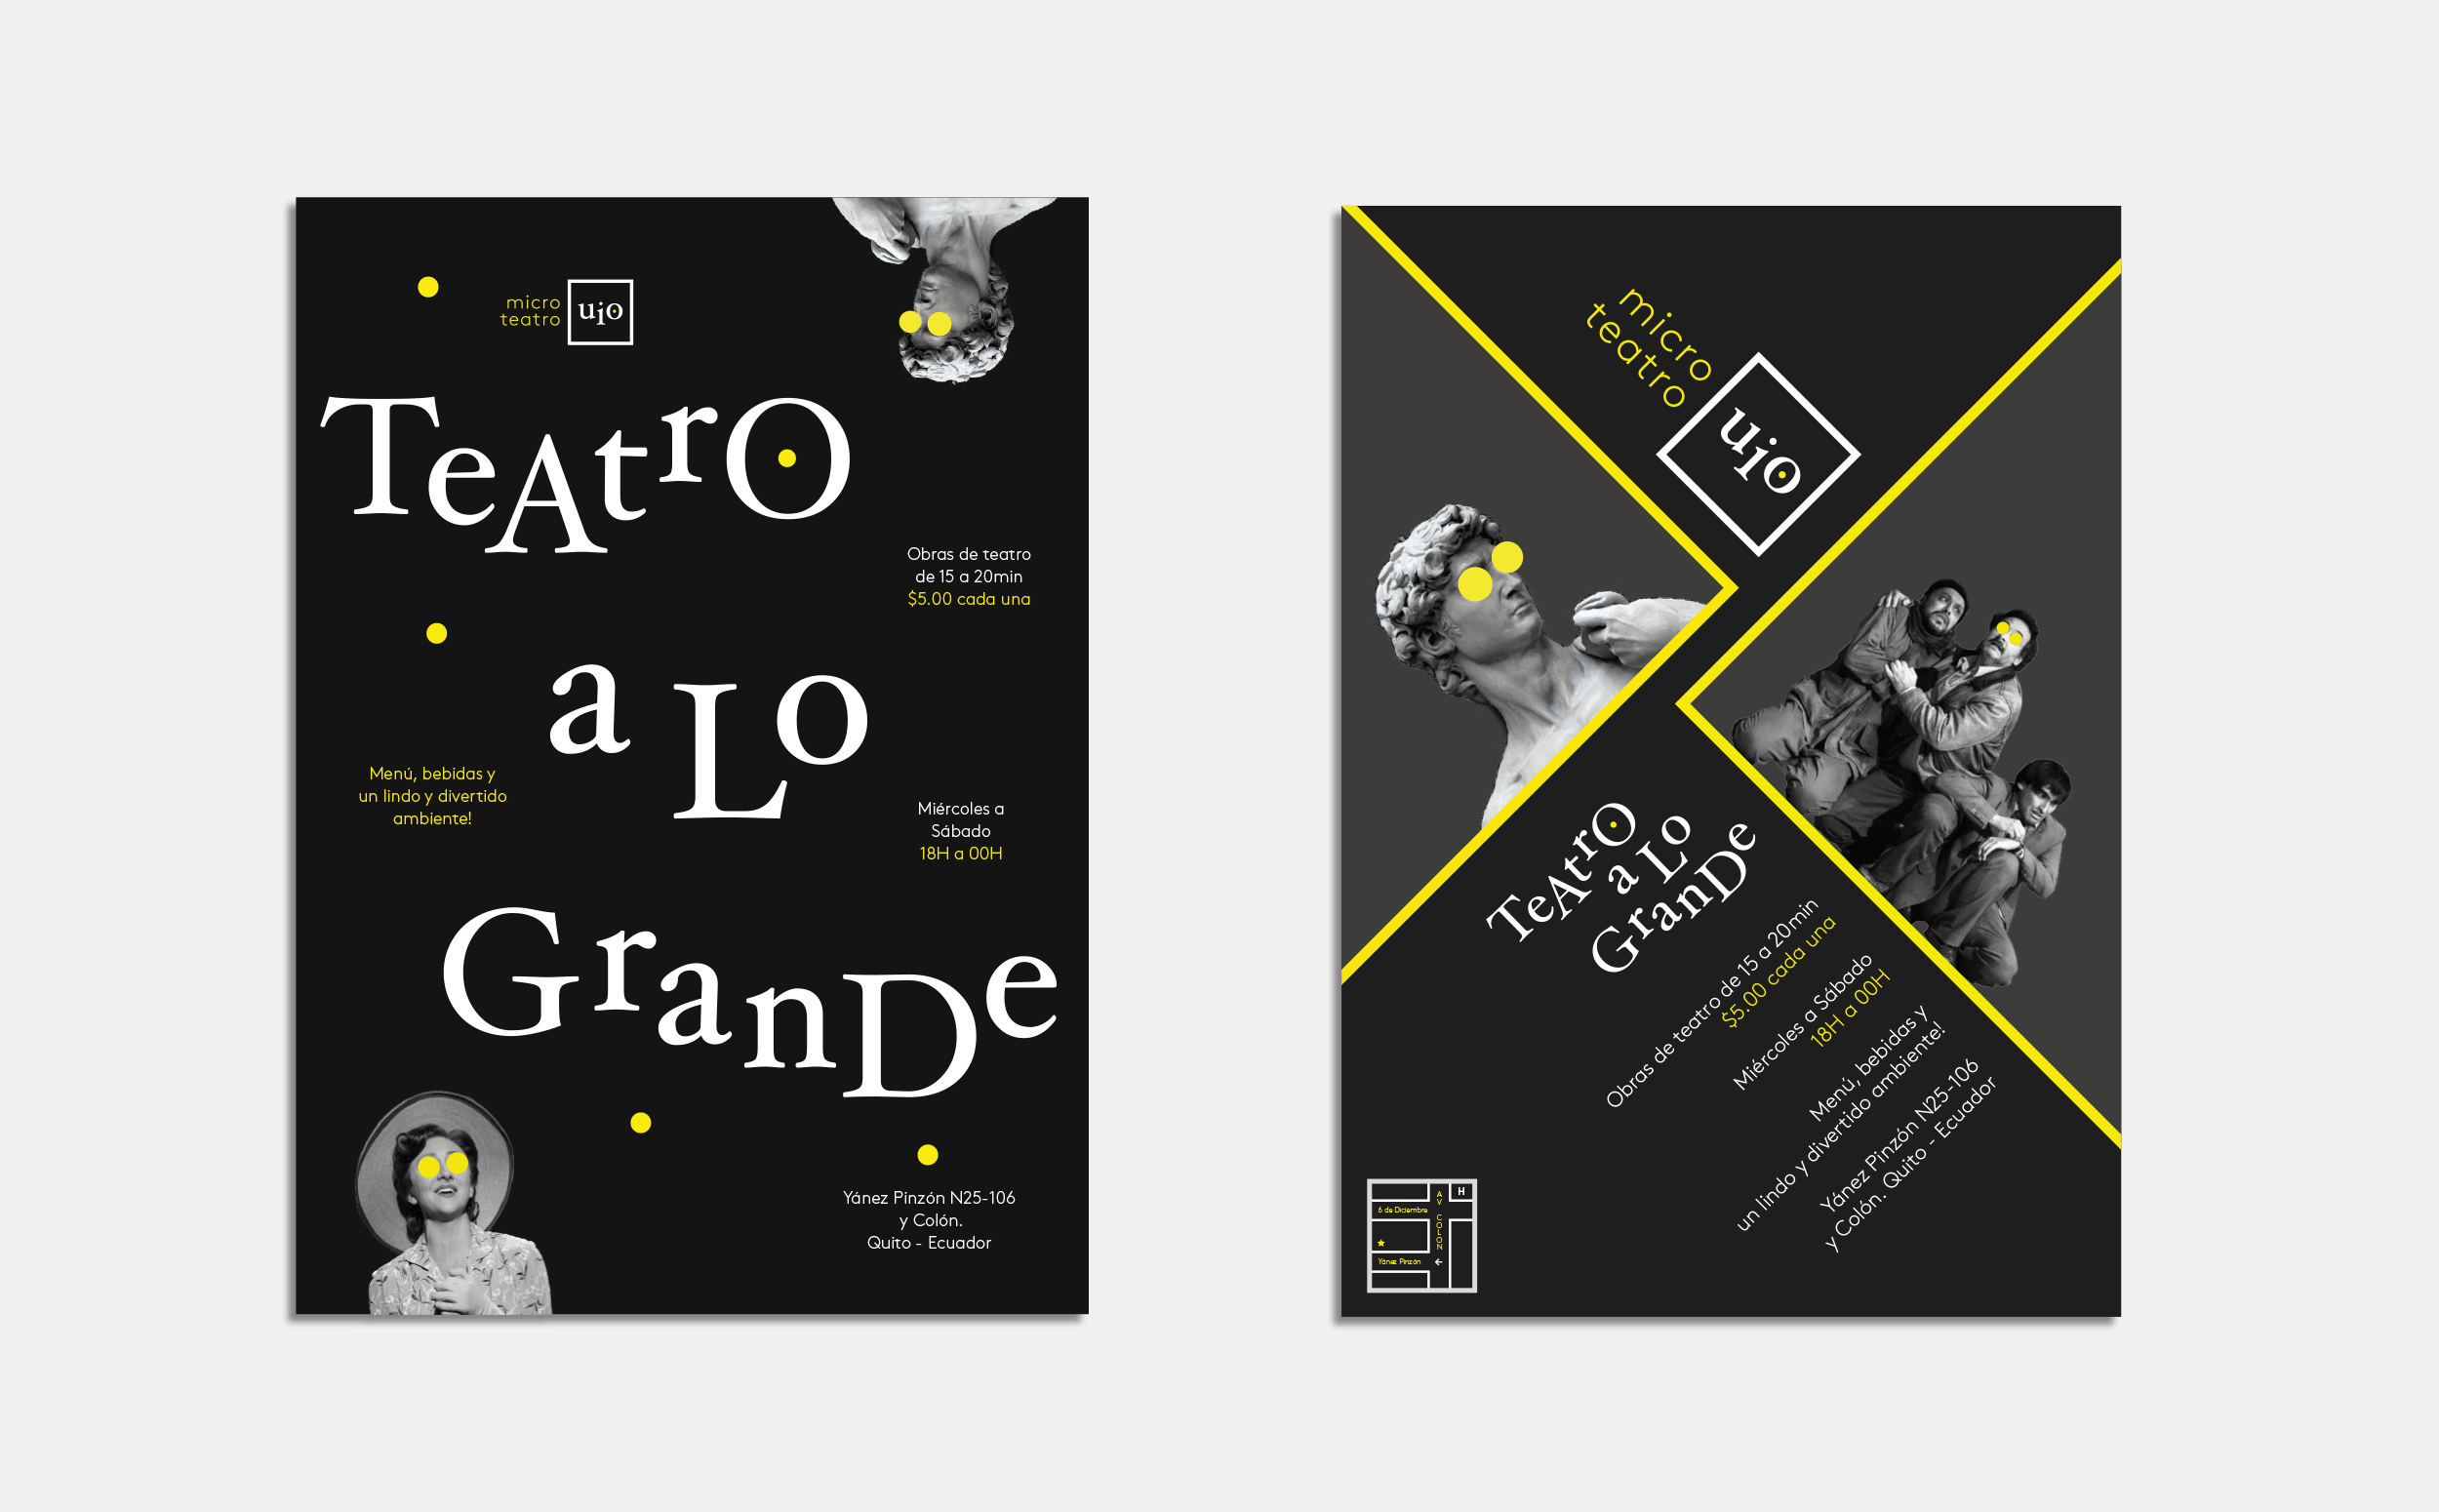 uio-posters